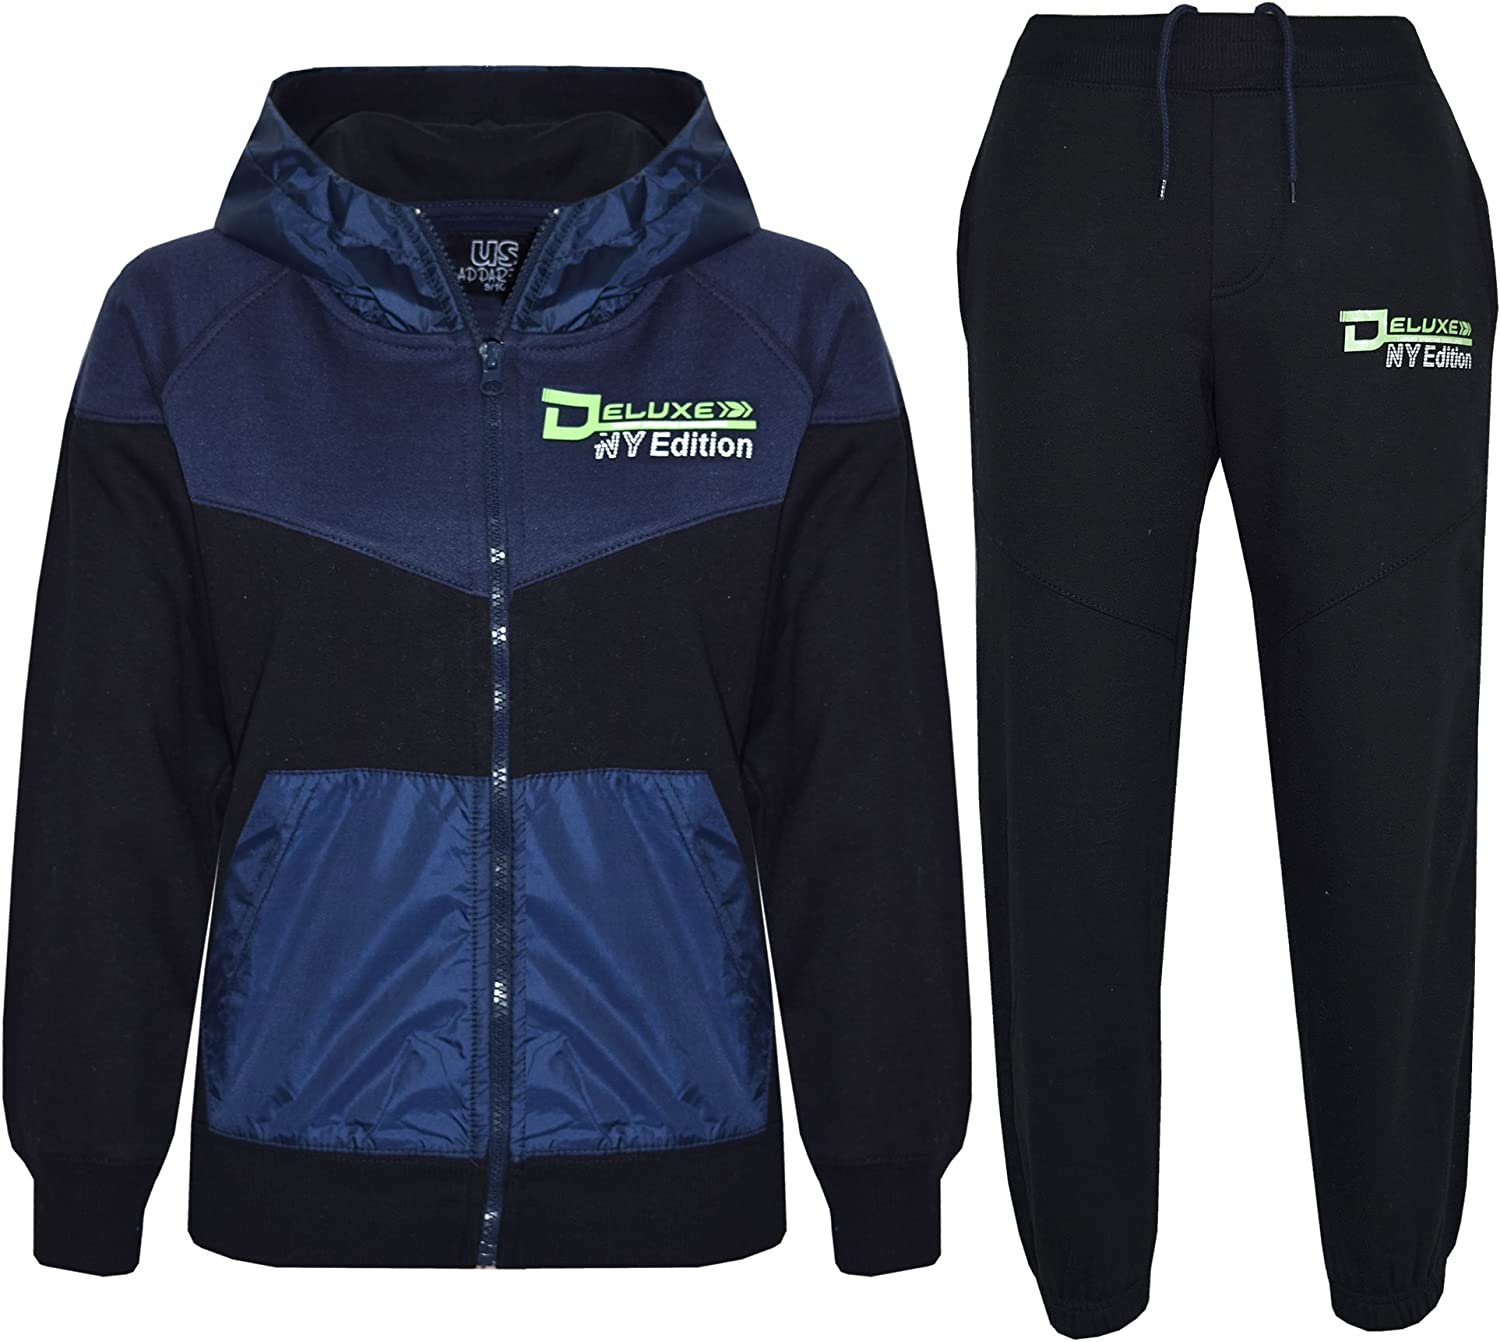 A2Z 4 Kids/® Kids Tracksuit Boys Girls NY Deluxe Edition Hoodie Bottom Jogging Suit 7-13 Yr